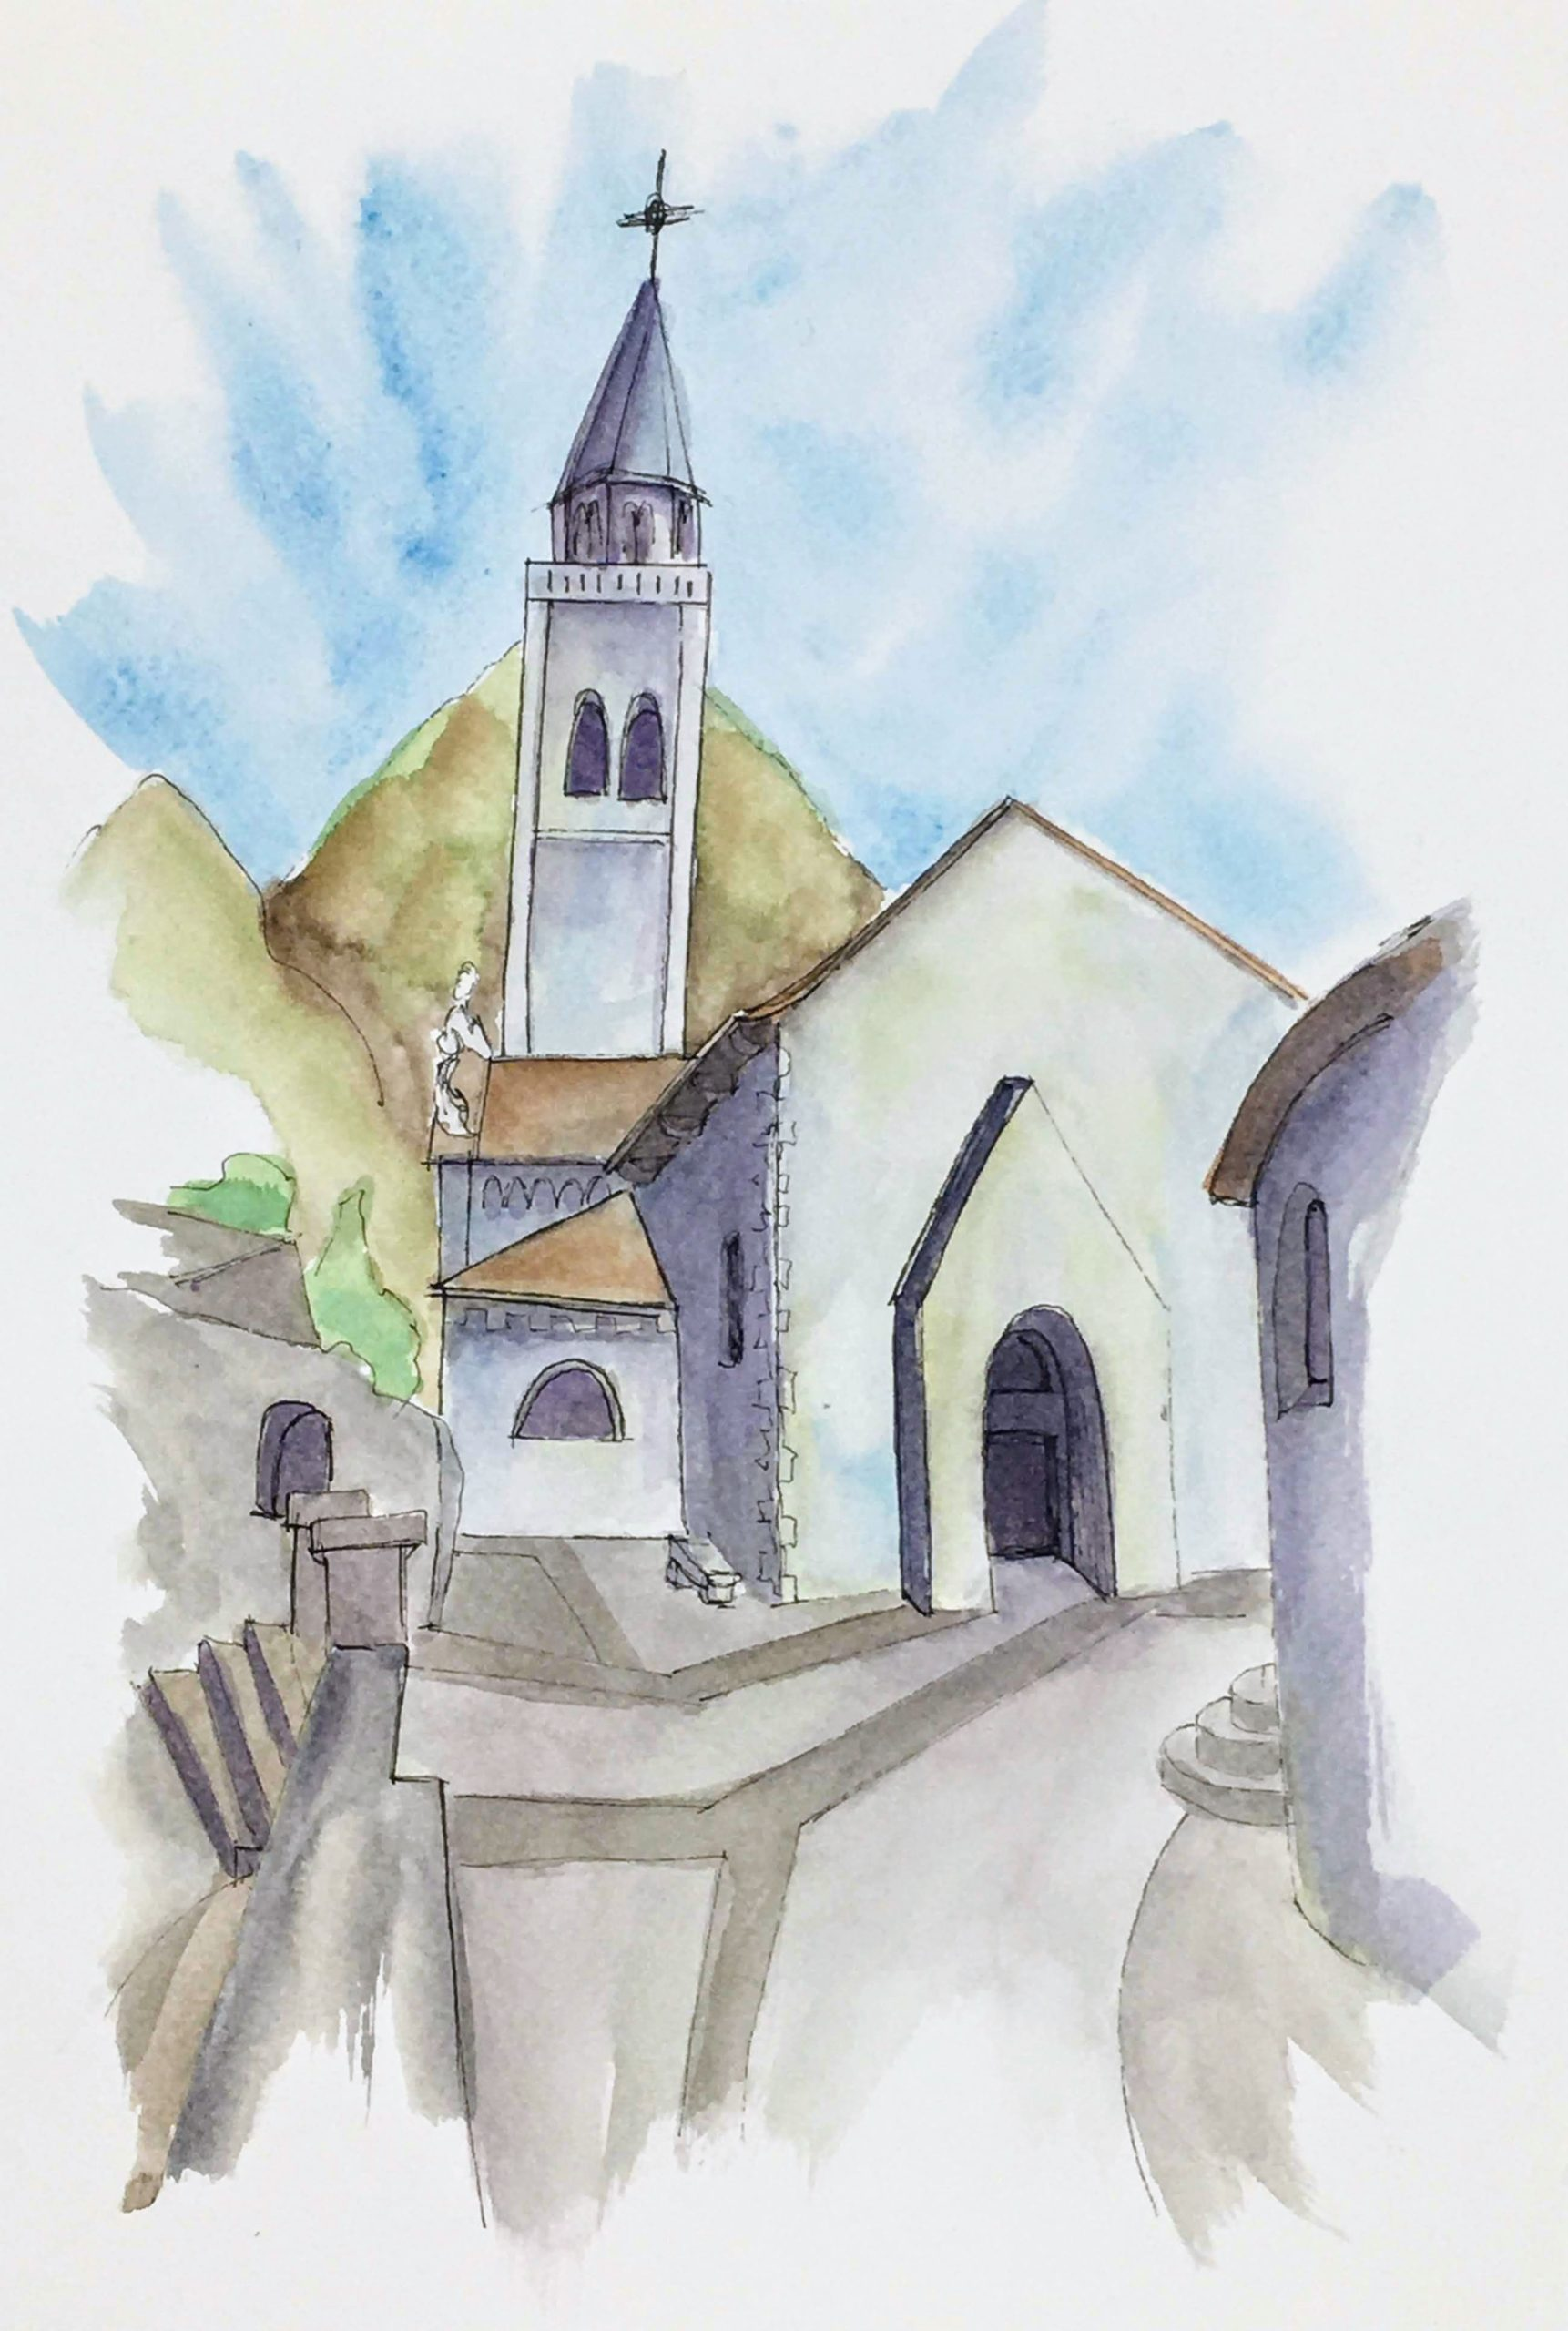 Painting of The Church of Sant'Andrea in Venzone